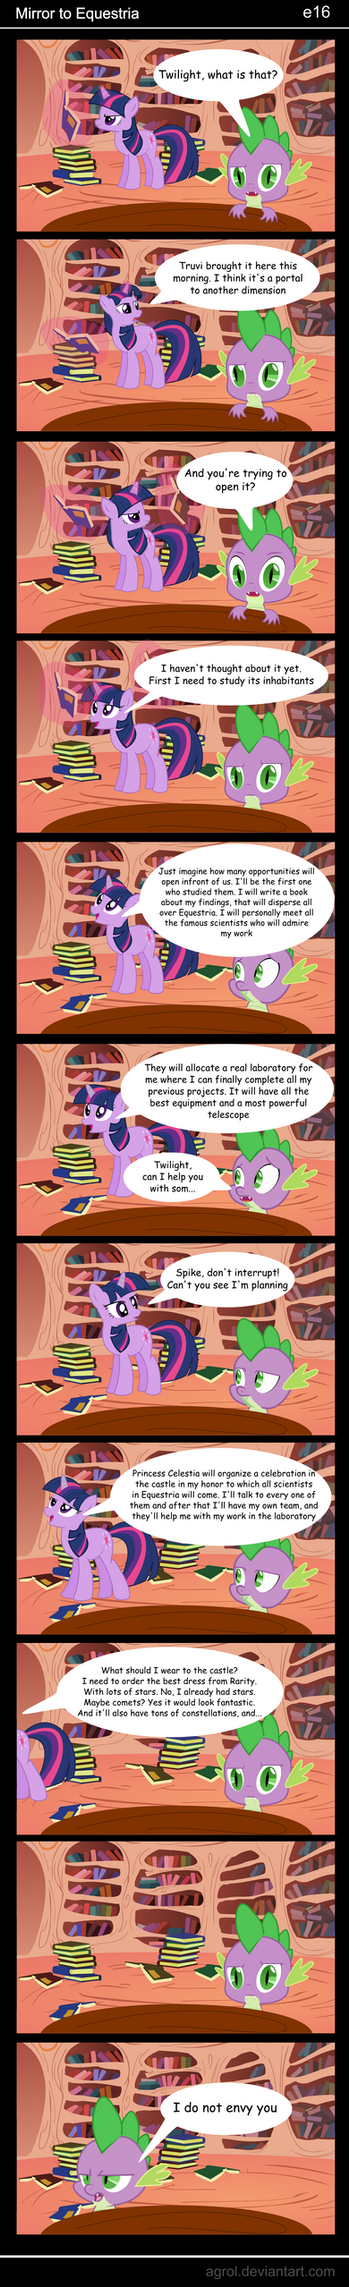 Mirror to Equestria e16 by Agrol